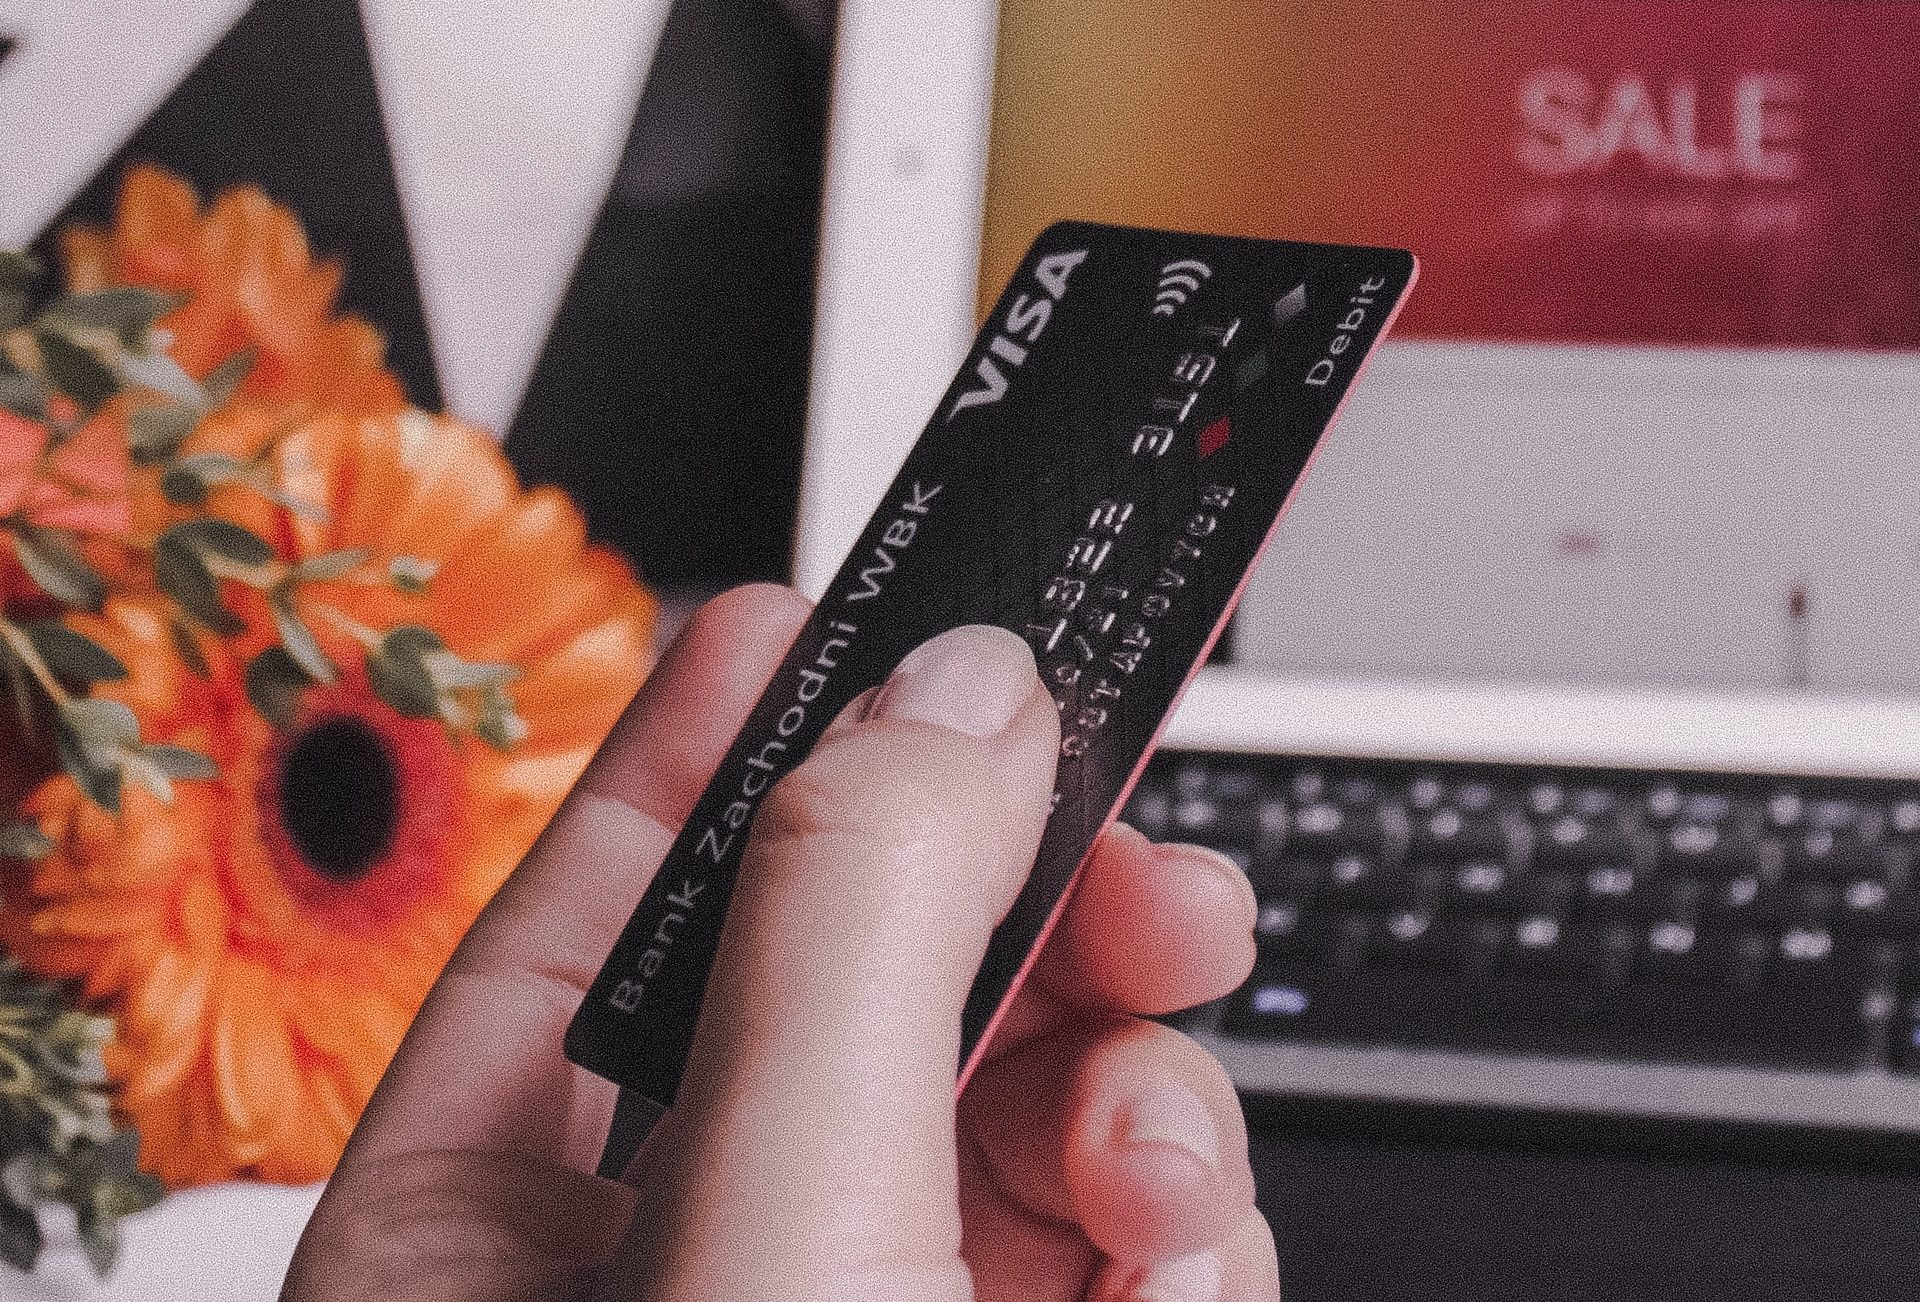 A hand holding a credit card as someone makes an online purchase